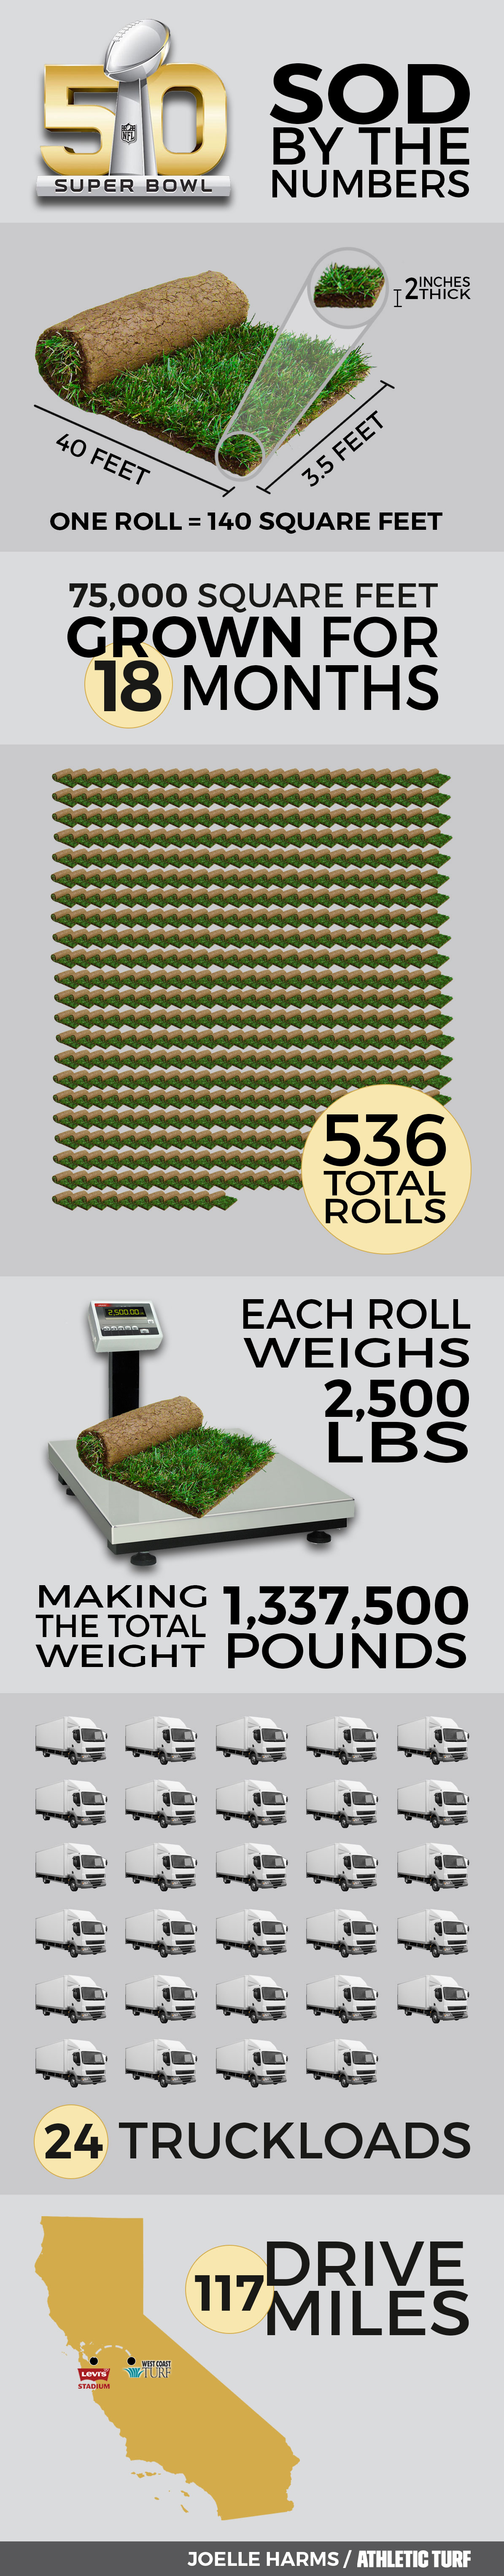 Super-Bowl-50-Turf-Infographic